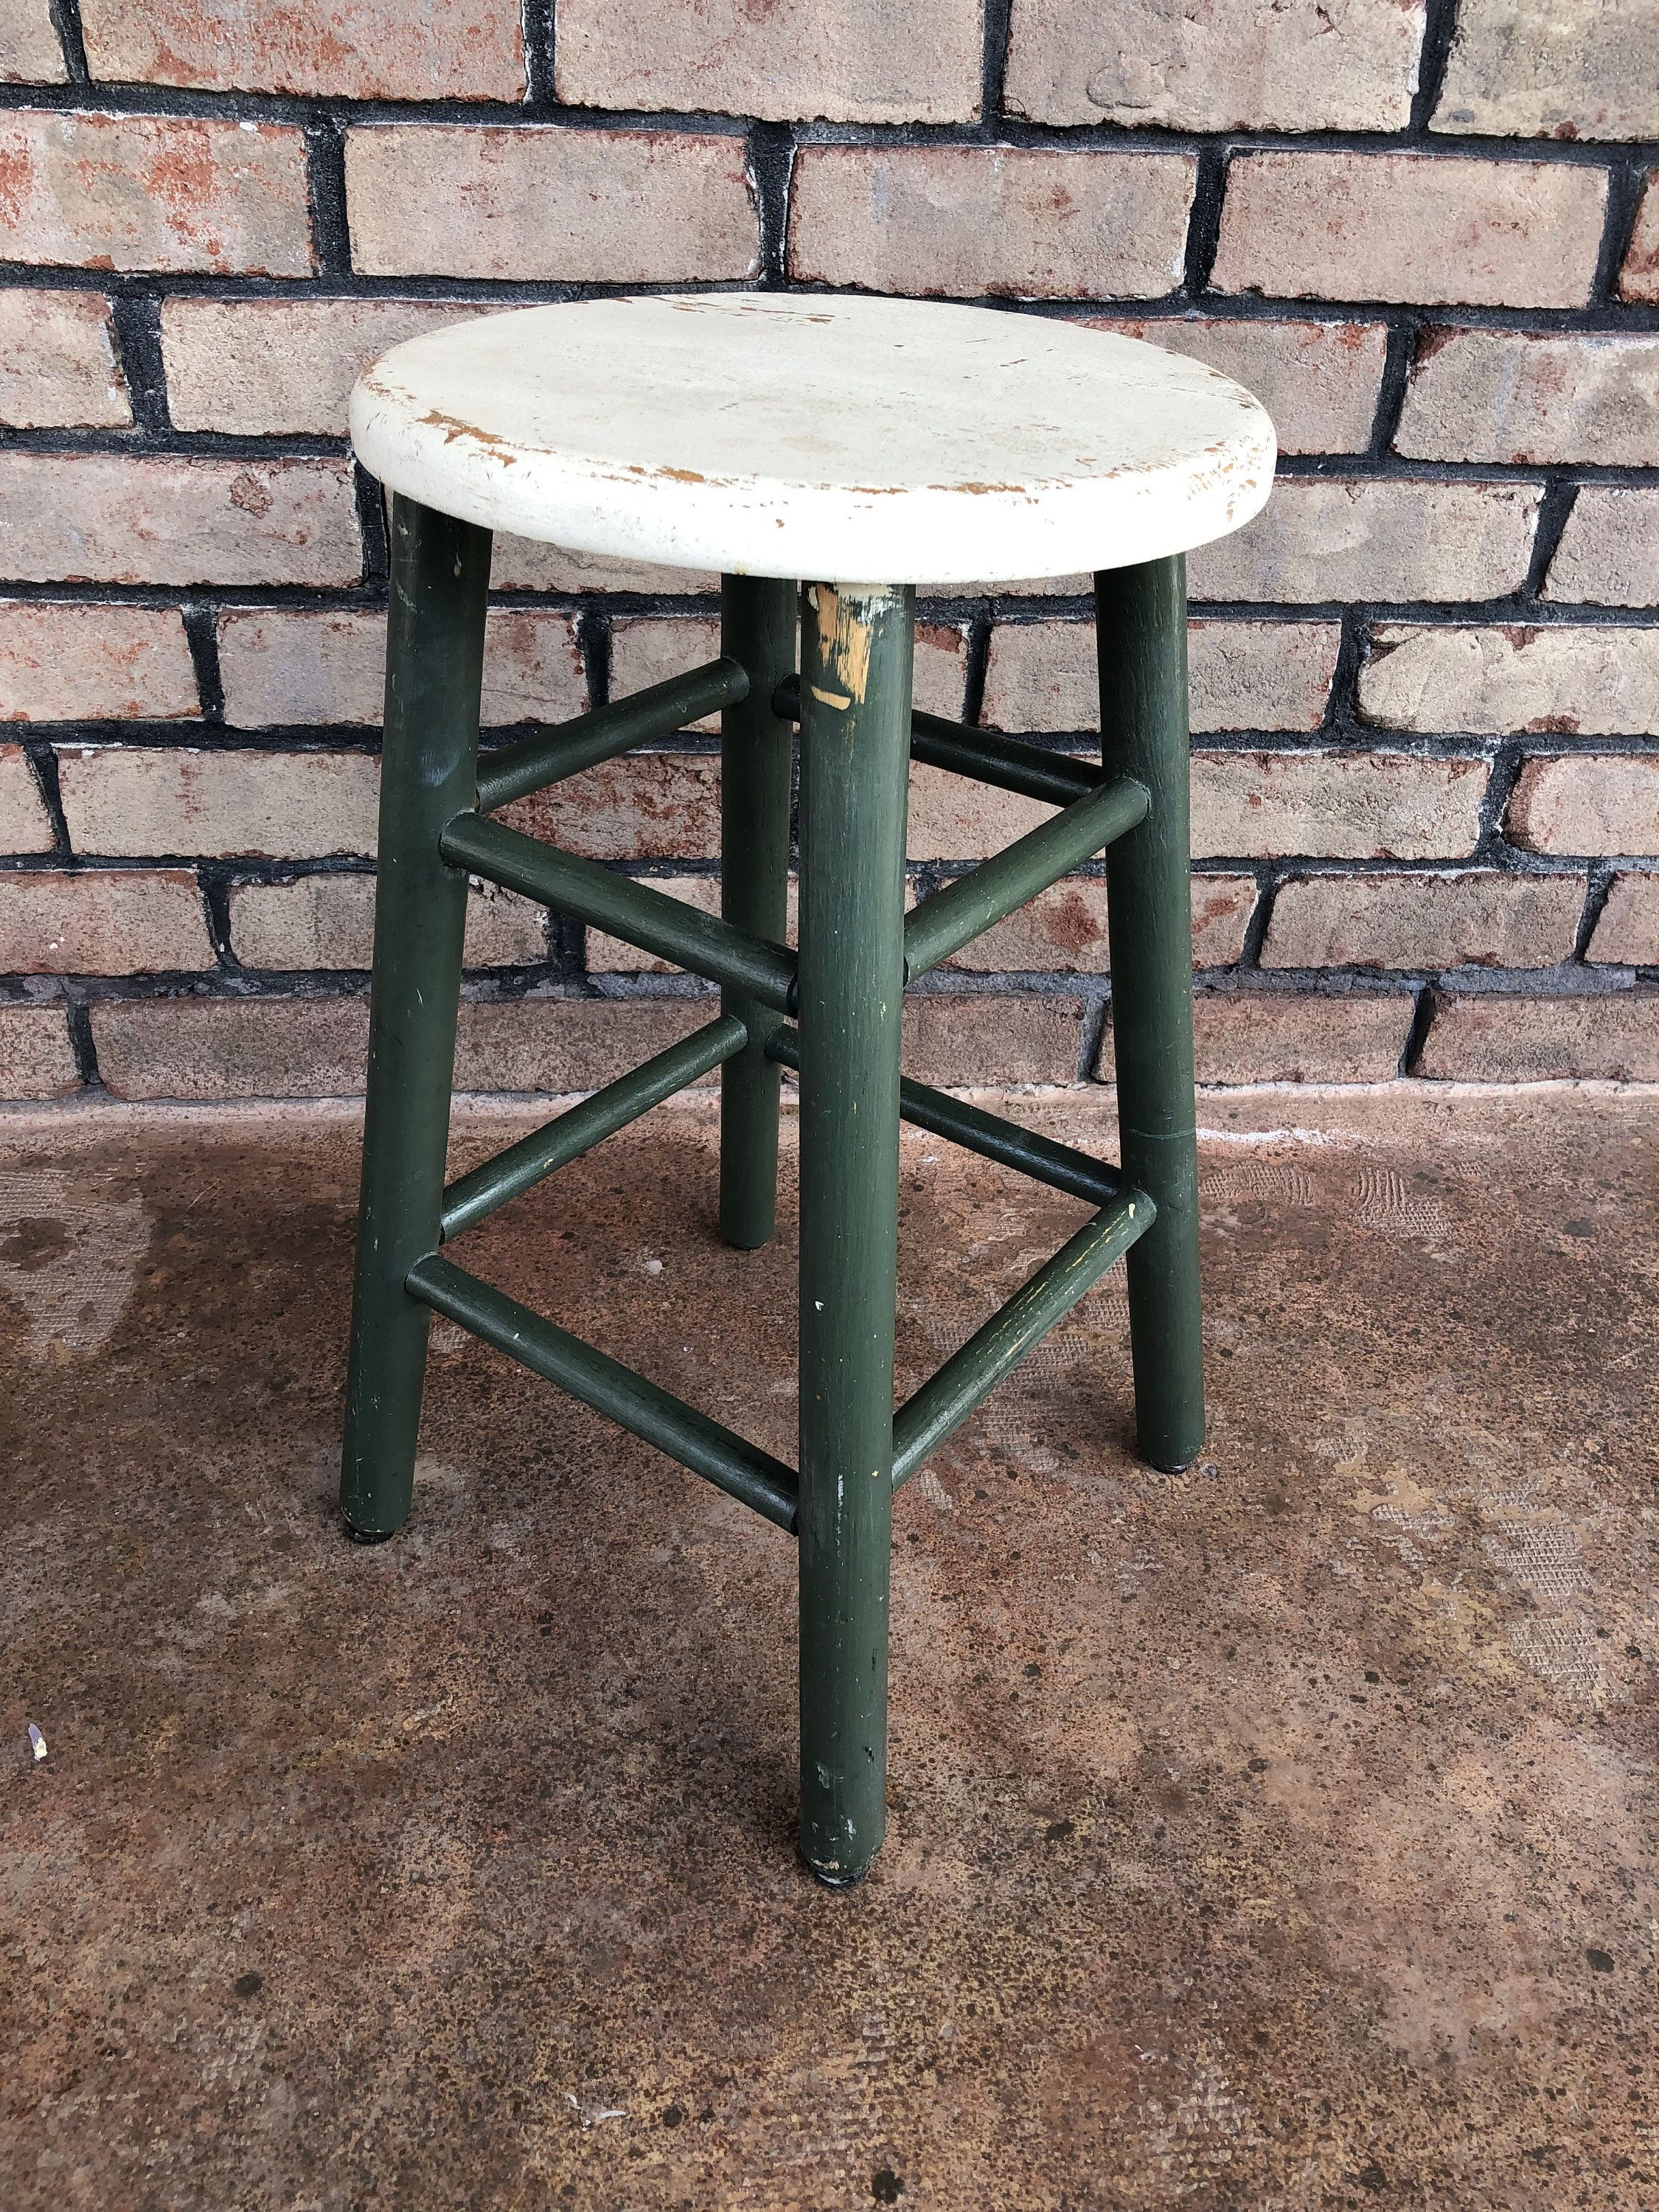 Miraculous Vintage Green And White Stool Painted Farm House Plant Spiritservingveterans Wood Chair Design Ideas Spiritservingveteransorg